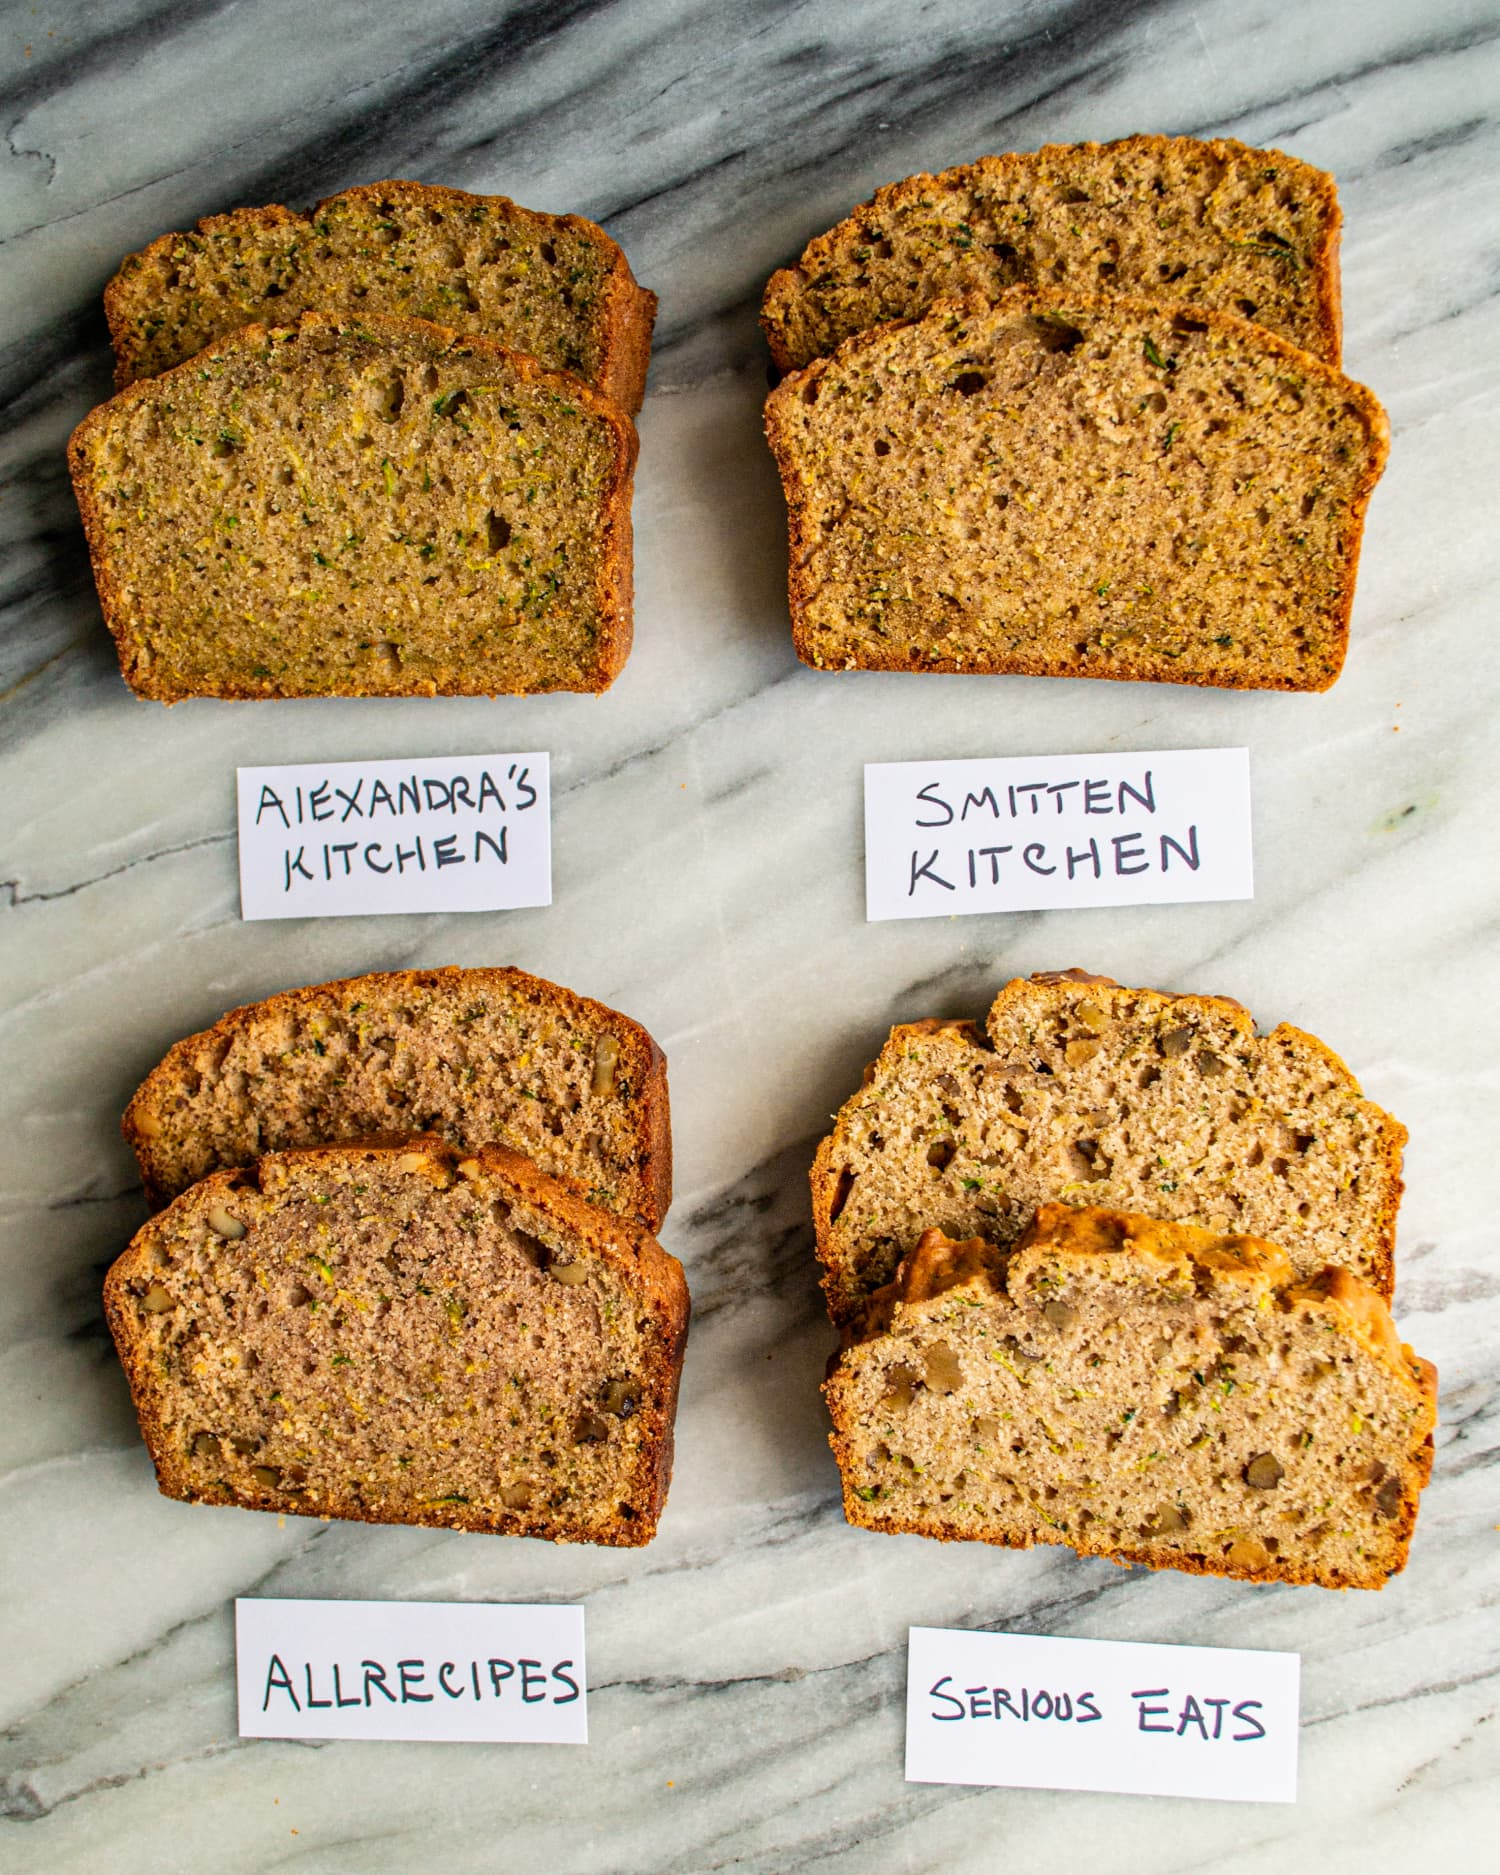 We Tested 4 Famous Zucchini Bread Recipes and Found a Clear Winner